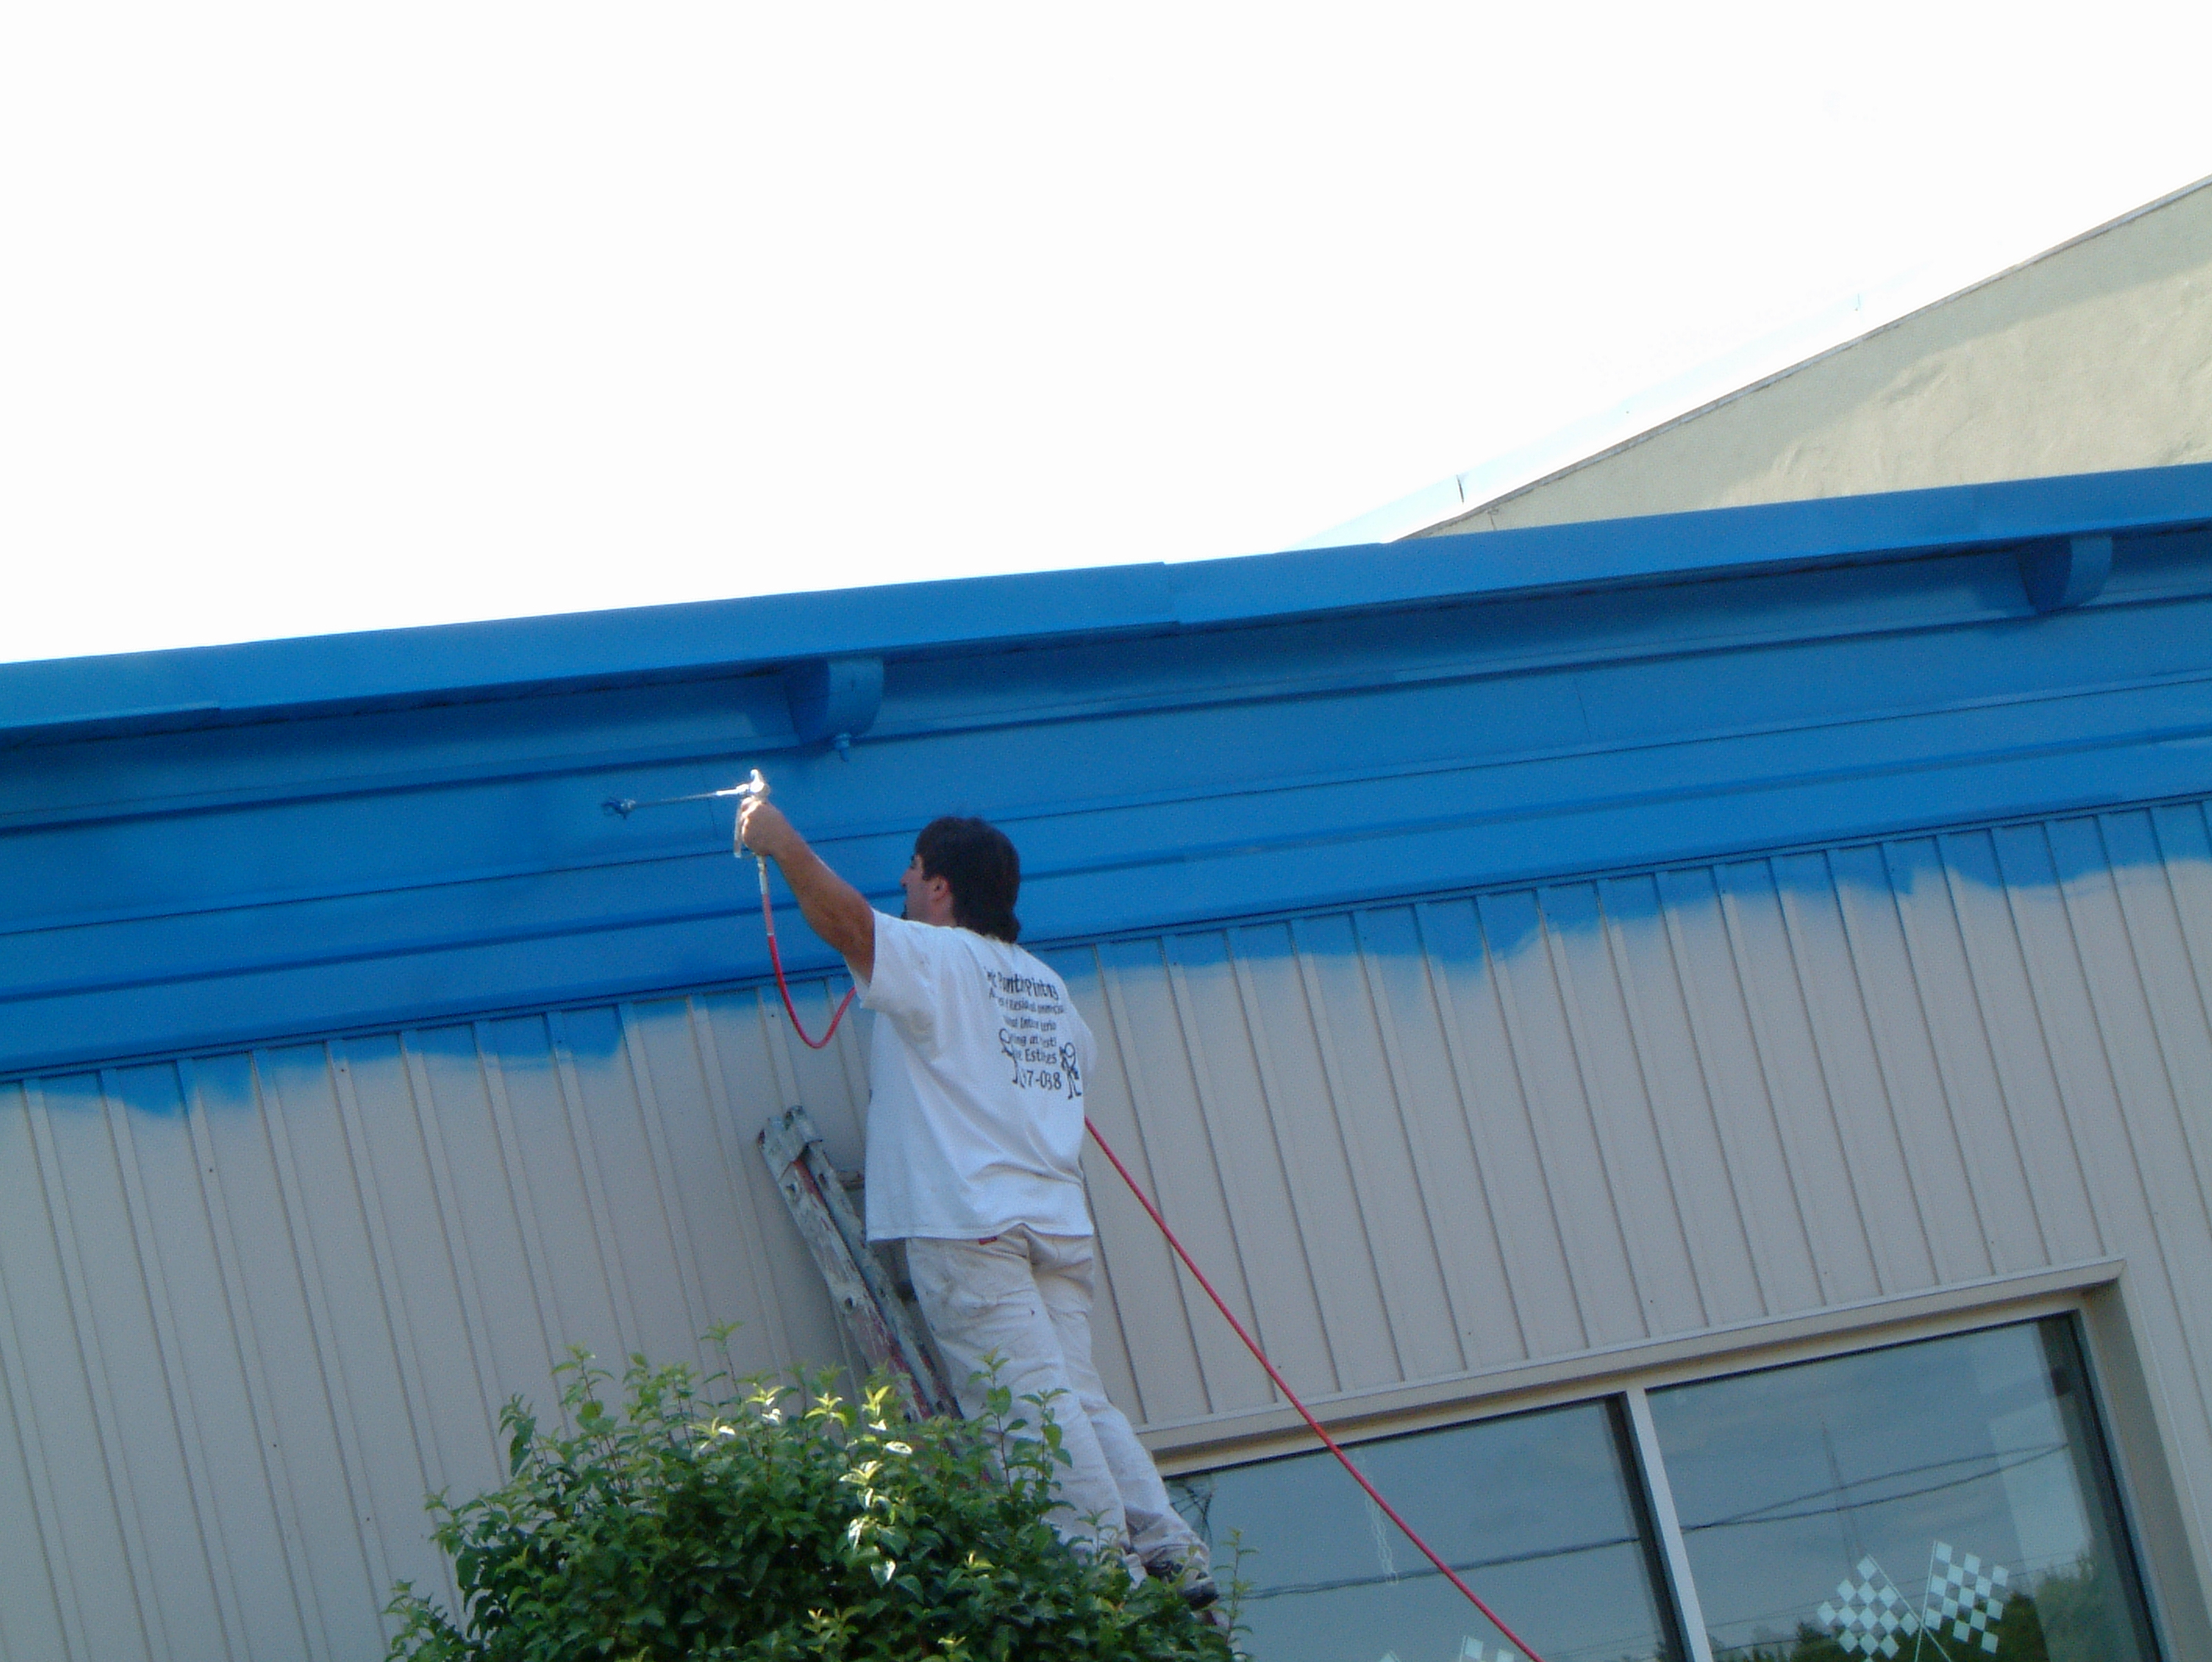 Commercial Painting Contractor Utica - Commercial painting contractors